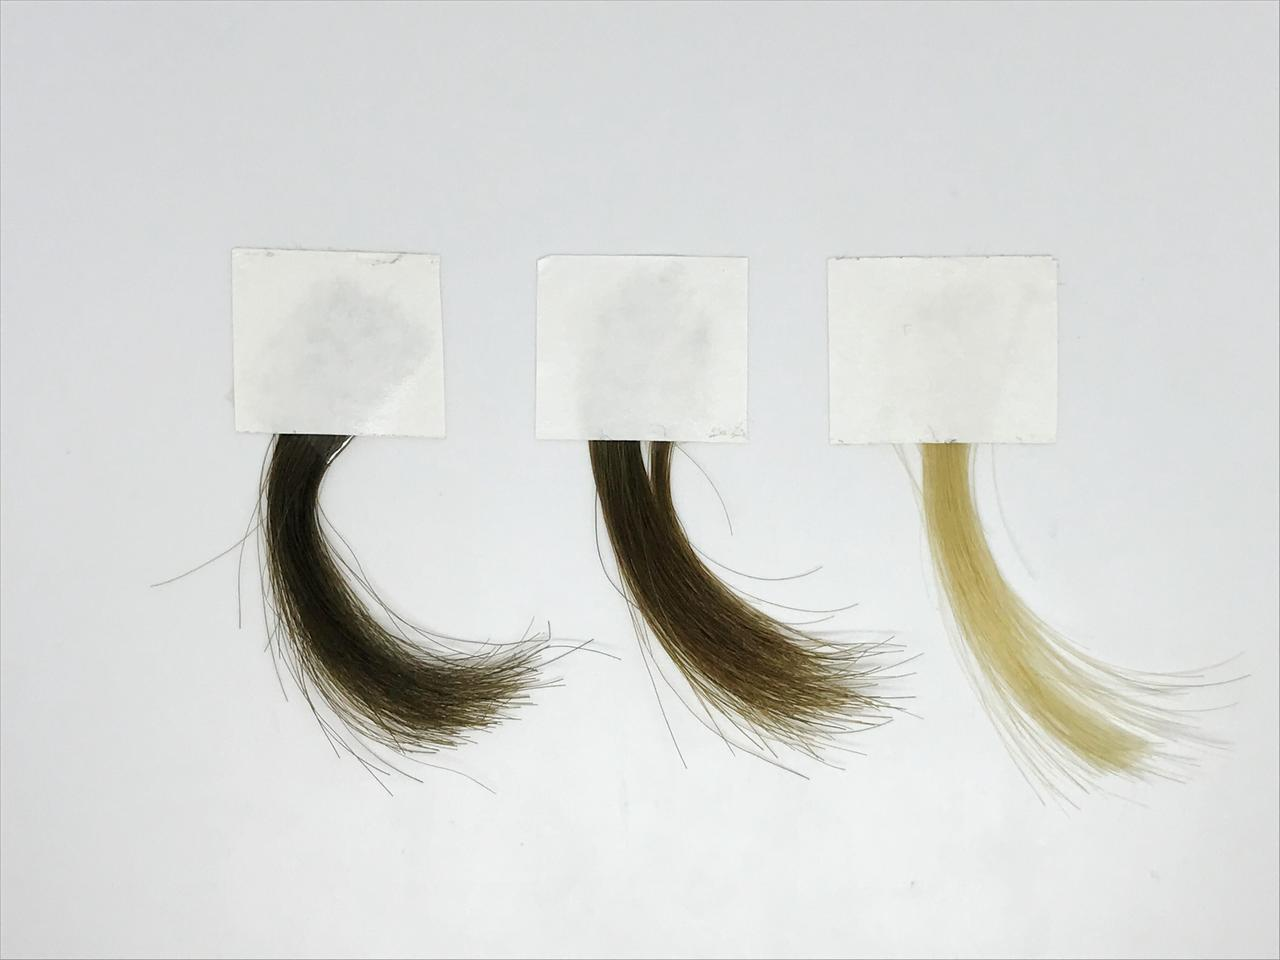 These hair samples were colored utilizing the synthetic melanin